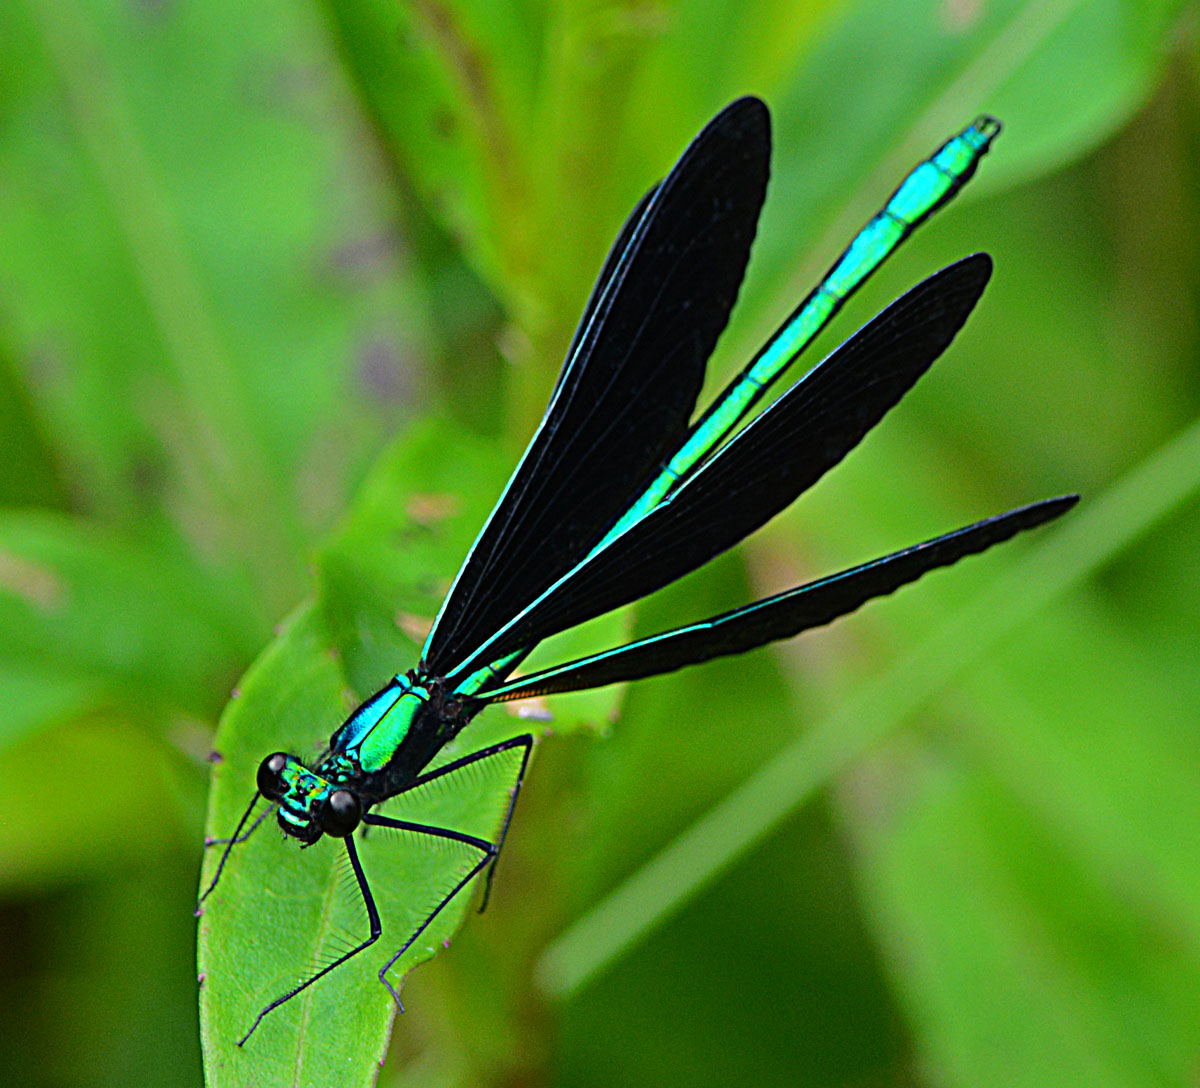 Black winged dragonfly - photo#10